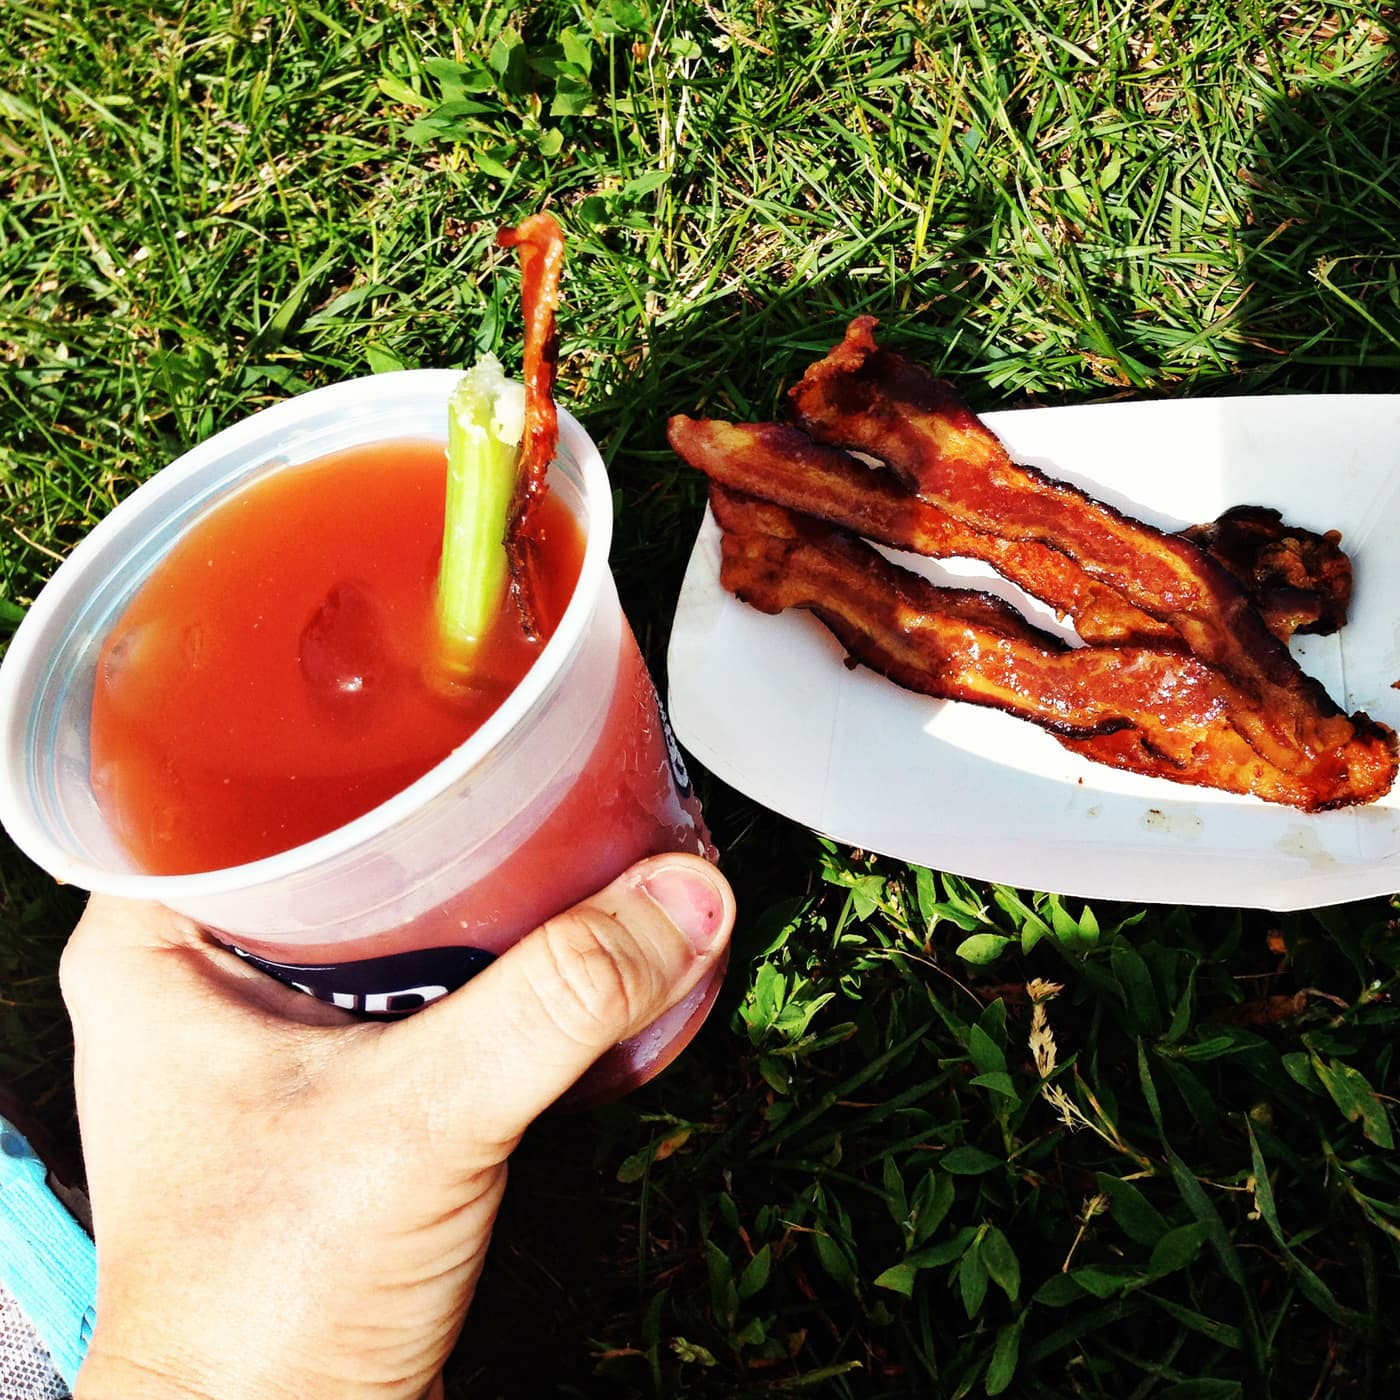 Bacon and a Bloody Mary at the finish line of the Bacon Chase 5K in Chicago, Illinois.